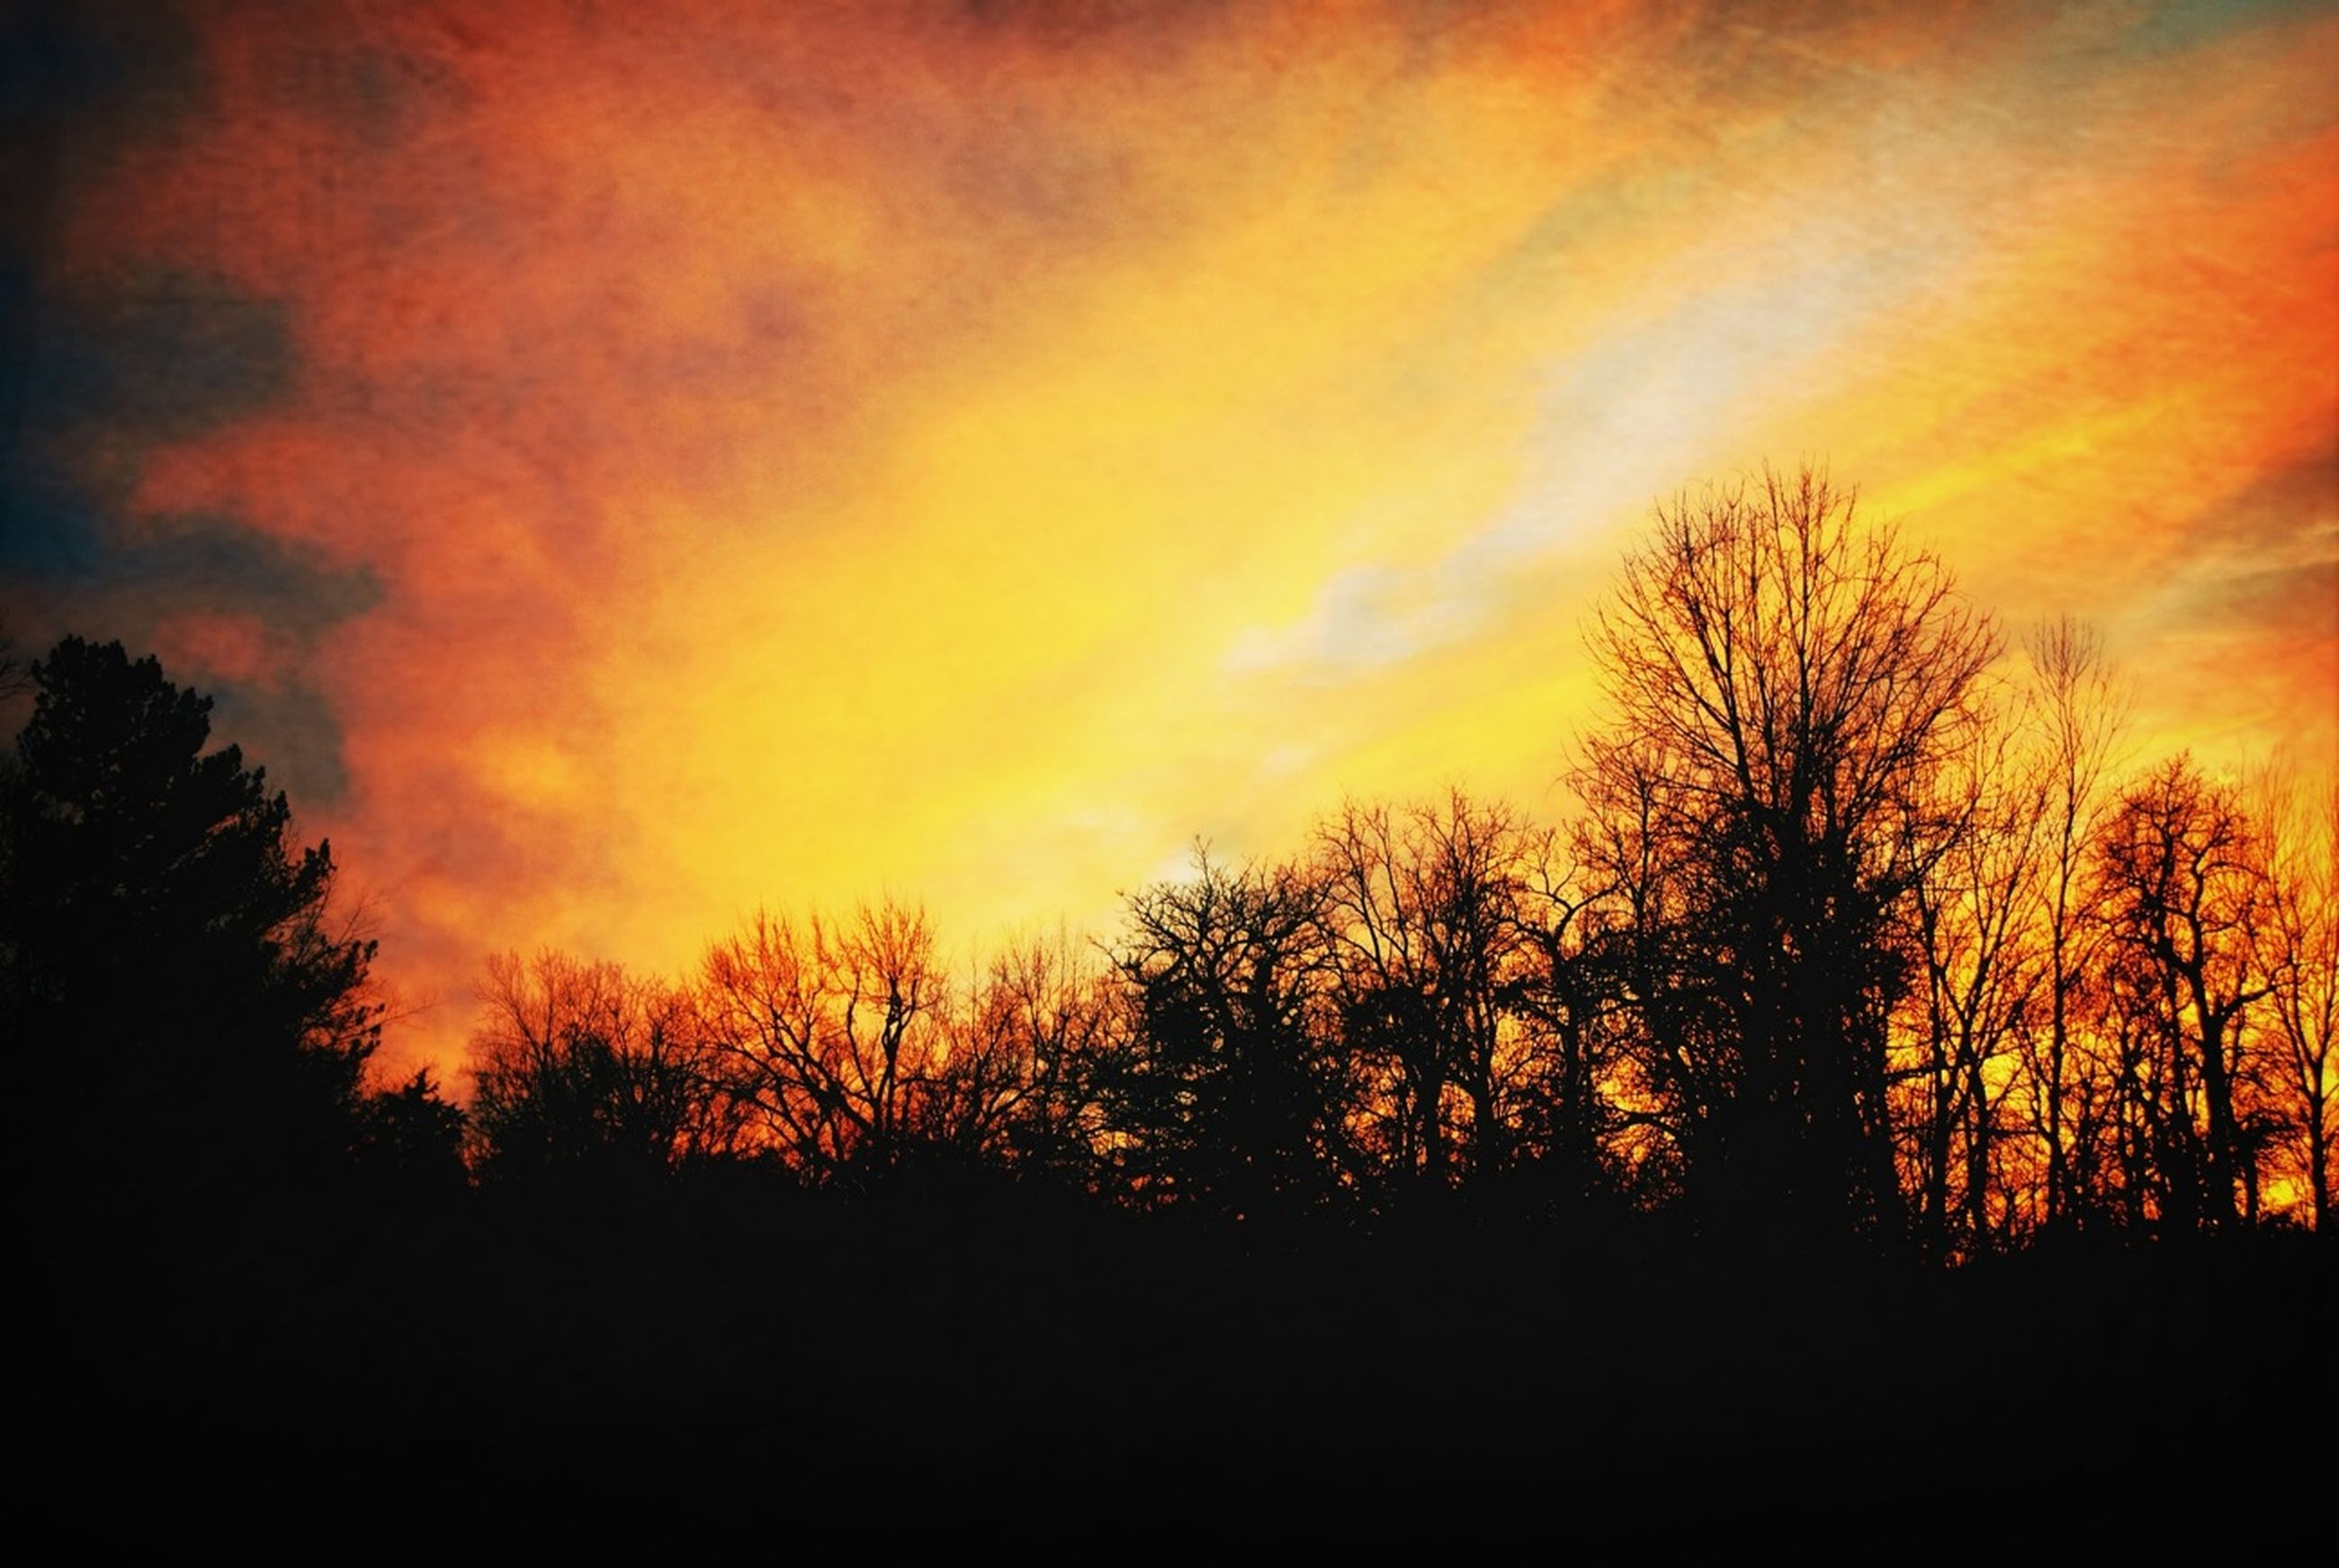 sunset, silhouette, tree, orange color, sky, beauty in nature, tranquility, scenics, tranquil scene, nature, cloud - sky, idyllic, dramatic sky, bare tree, landscape, branch, growth, outdoors, low angle view, majestic